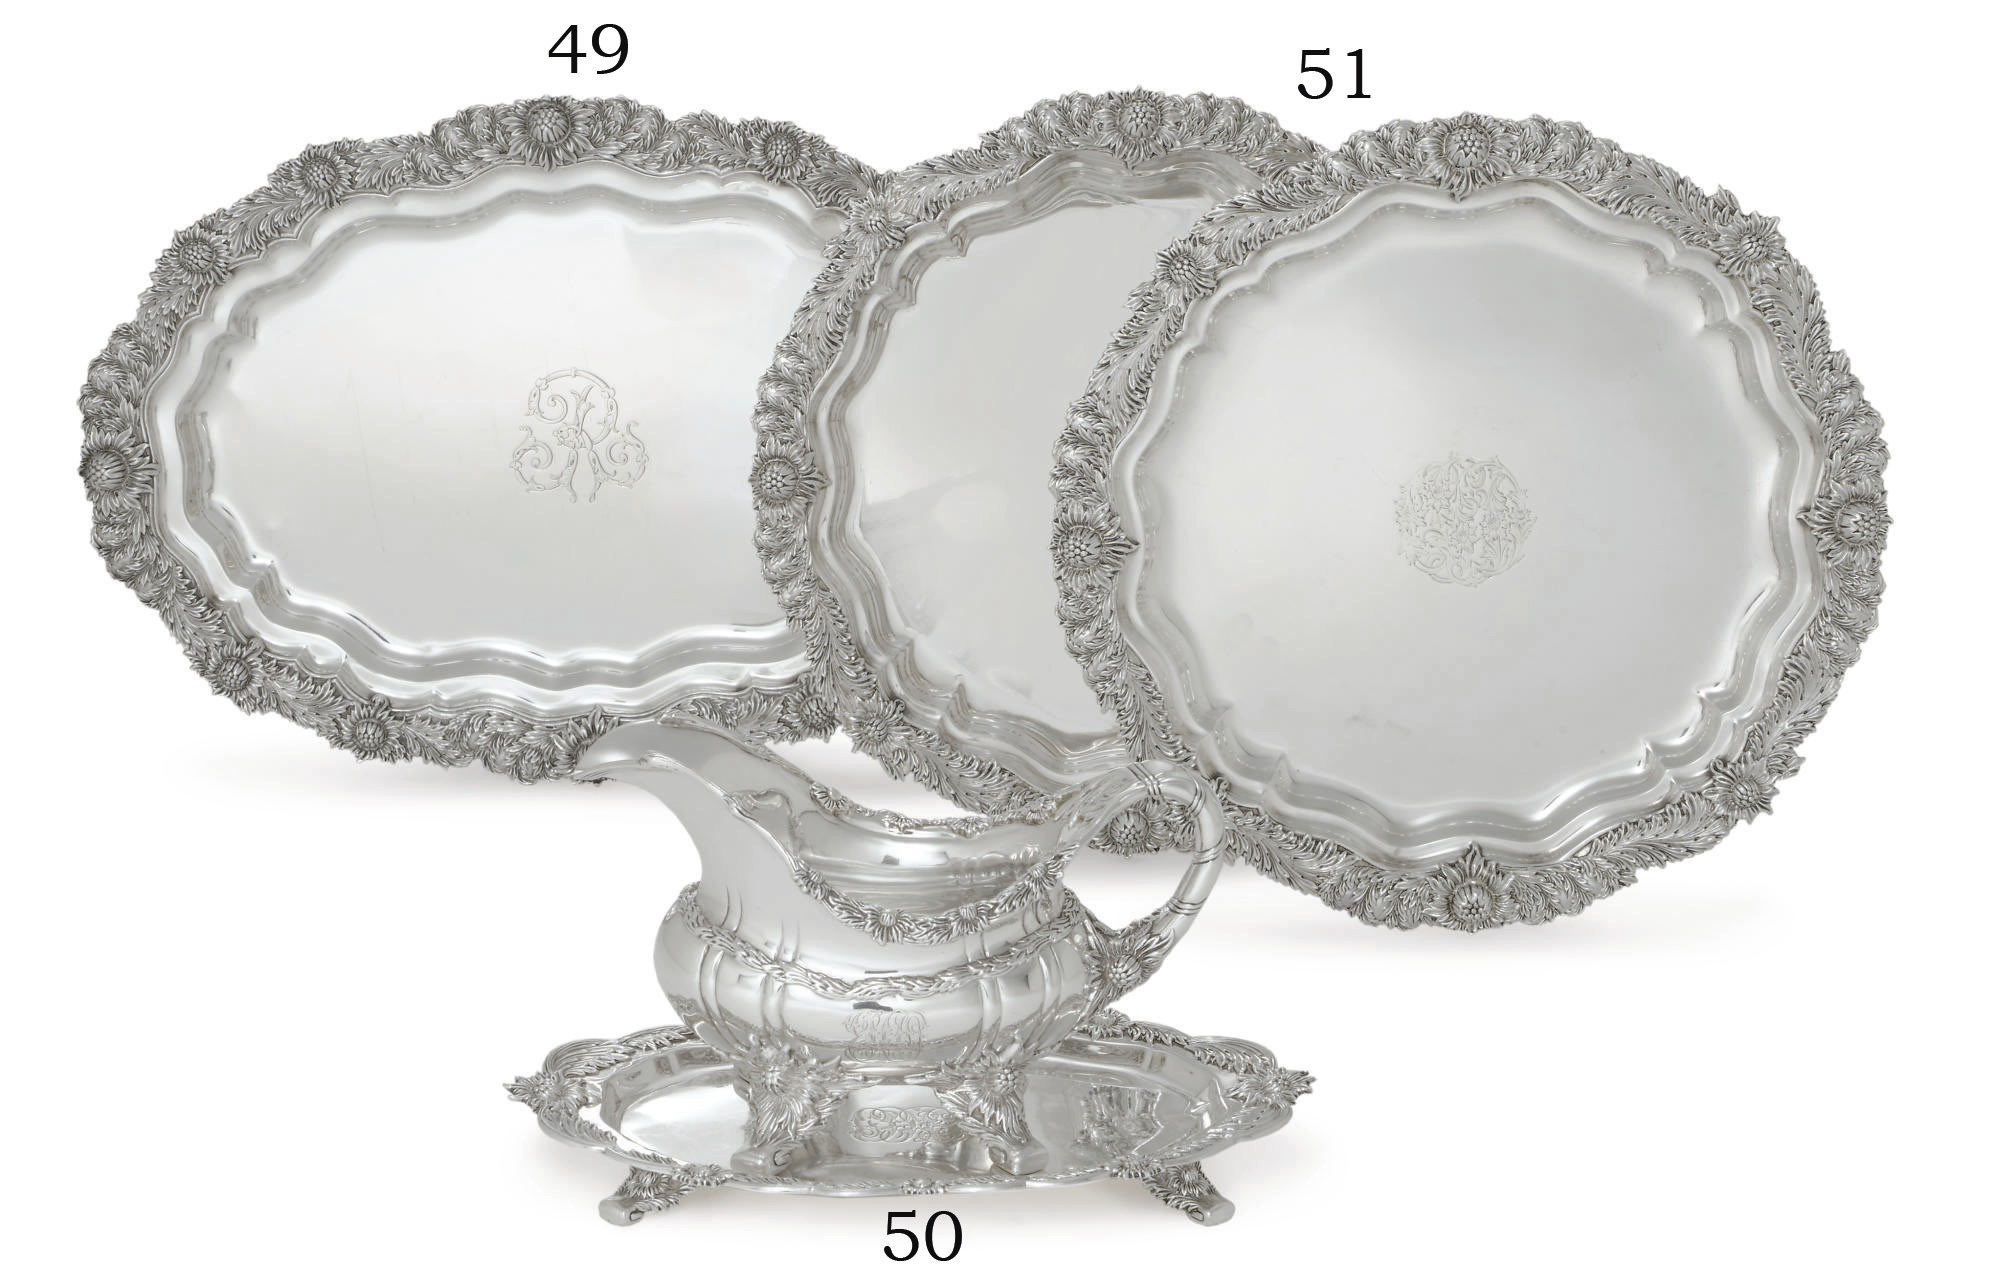 A PAIR OF SILVER SALVERS